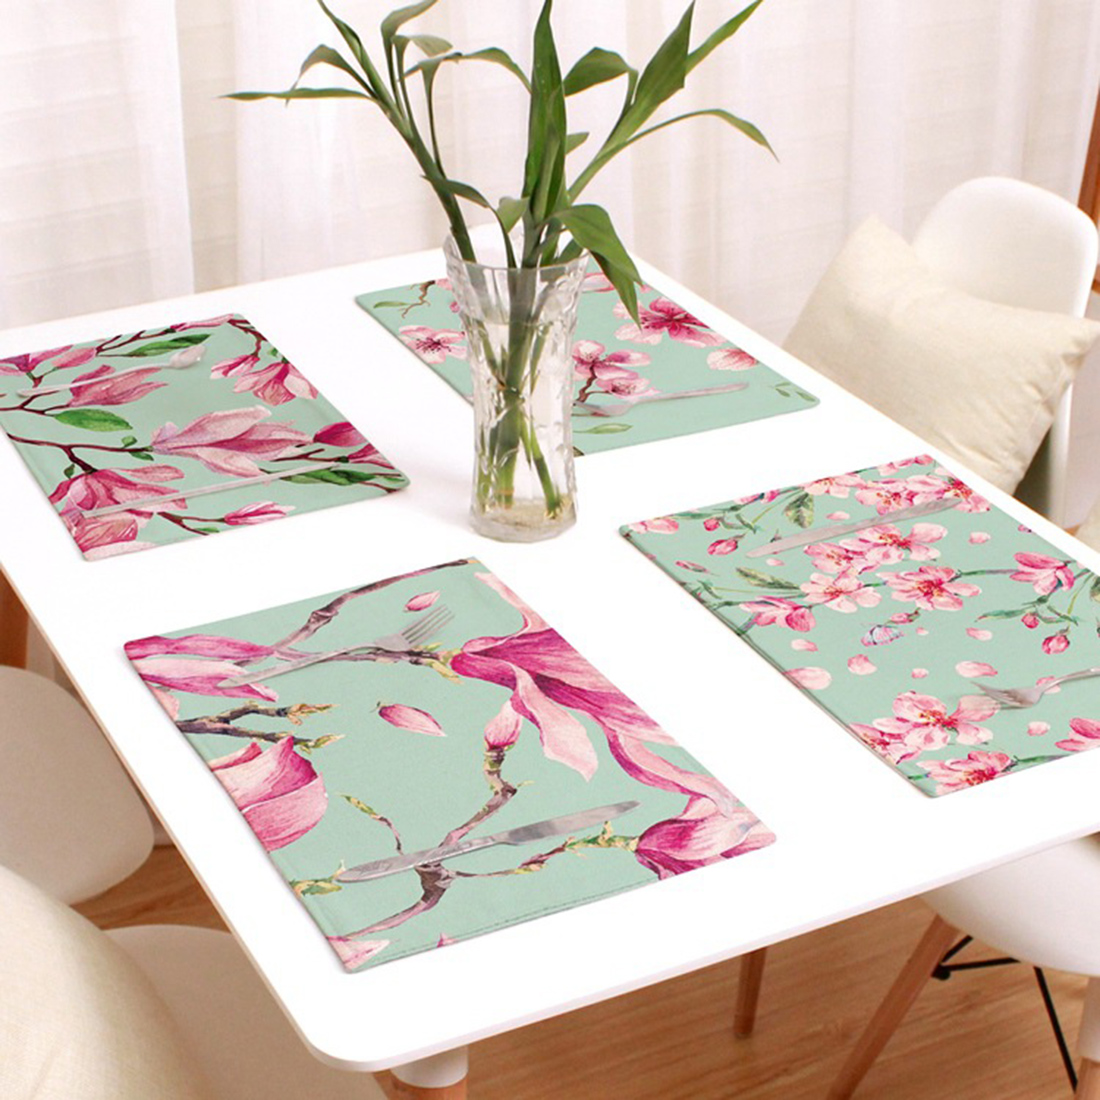 1 Pcs Placemat Fashion Cotton Fabric Dining Table Mat Dish